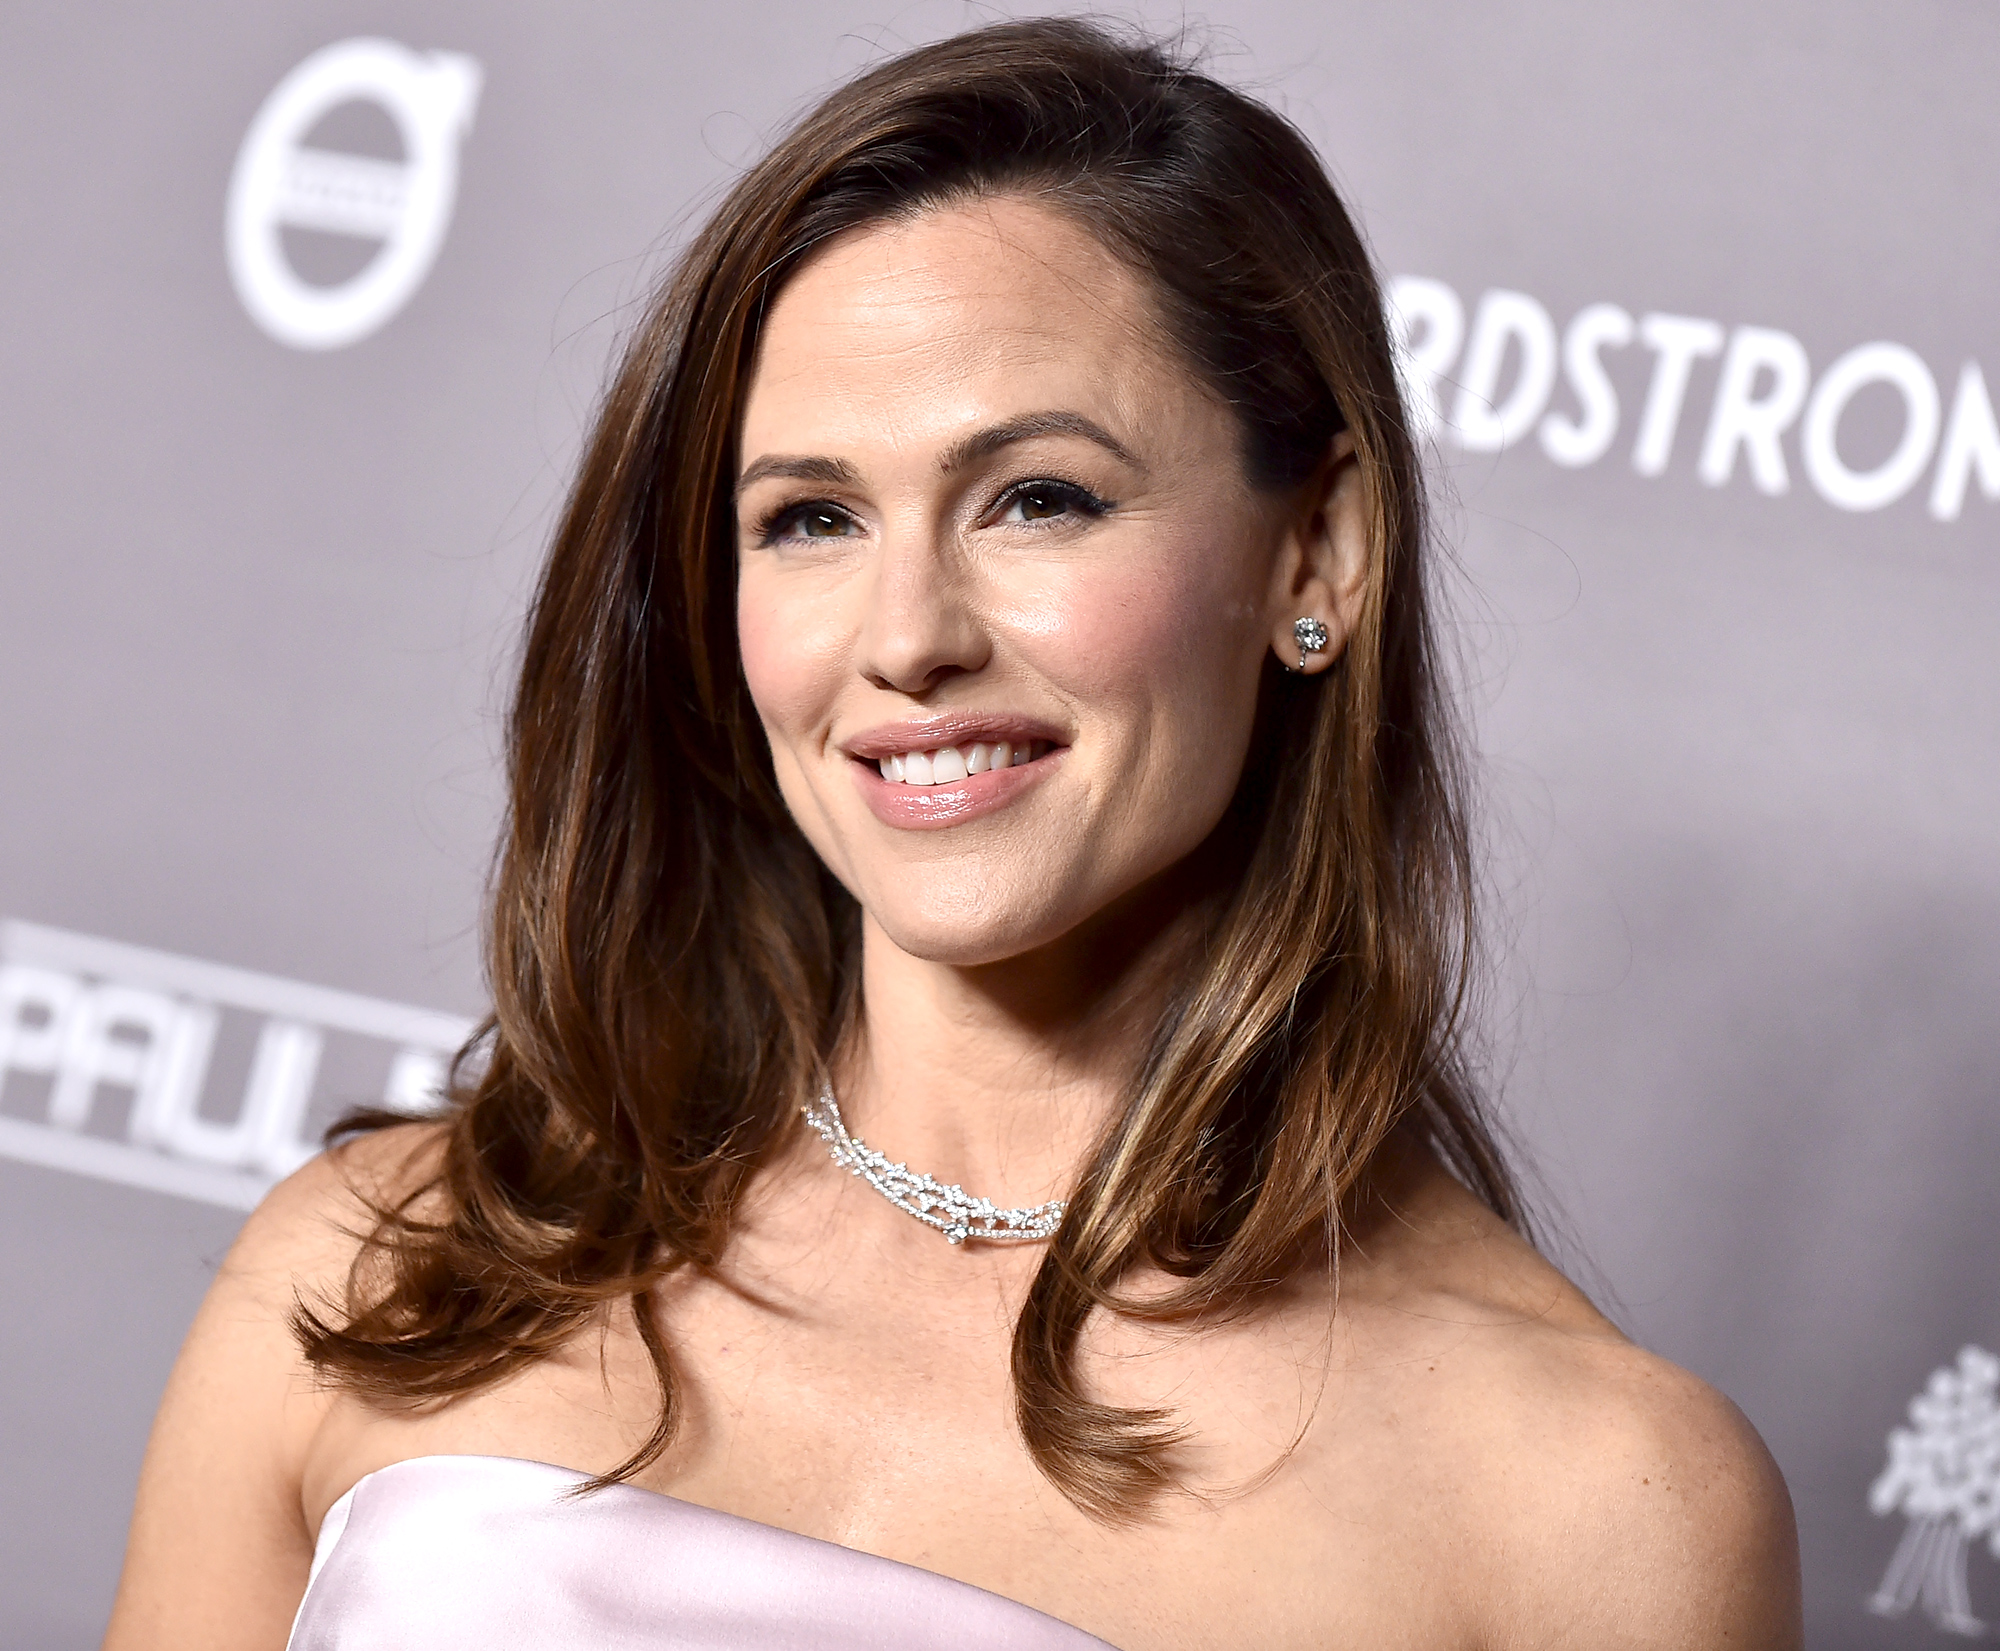 Jennifer Garner Shares Expert Breakup Advice With Instagram Fan